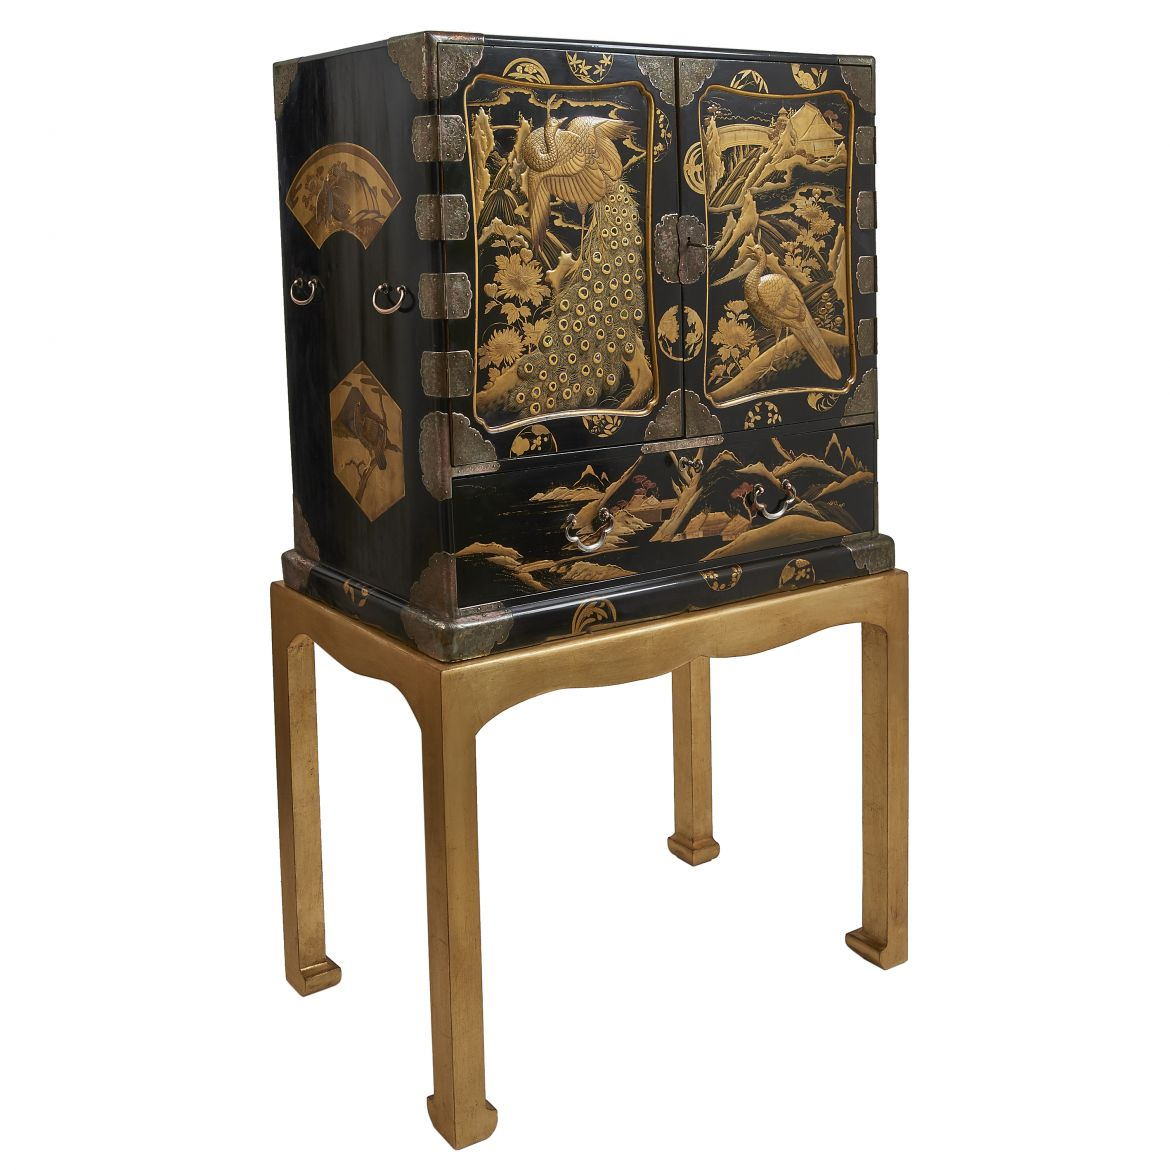 Japanese Lacquered Cabinet